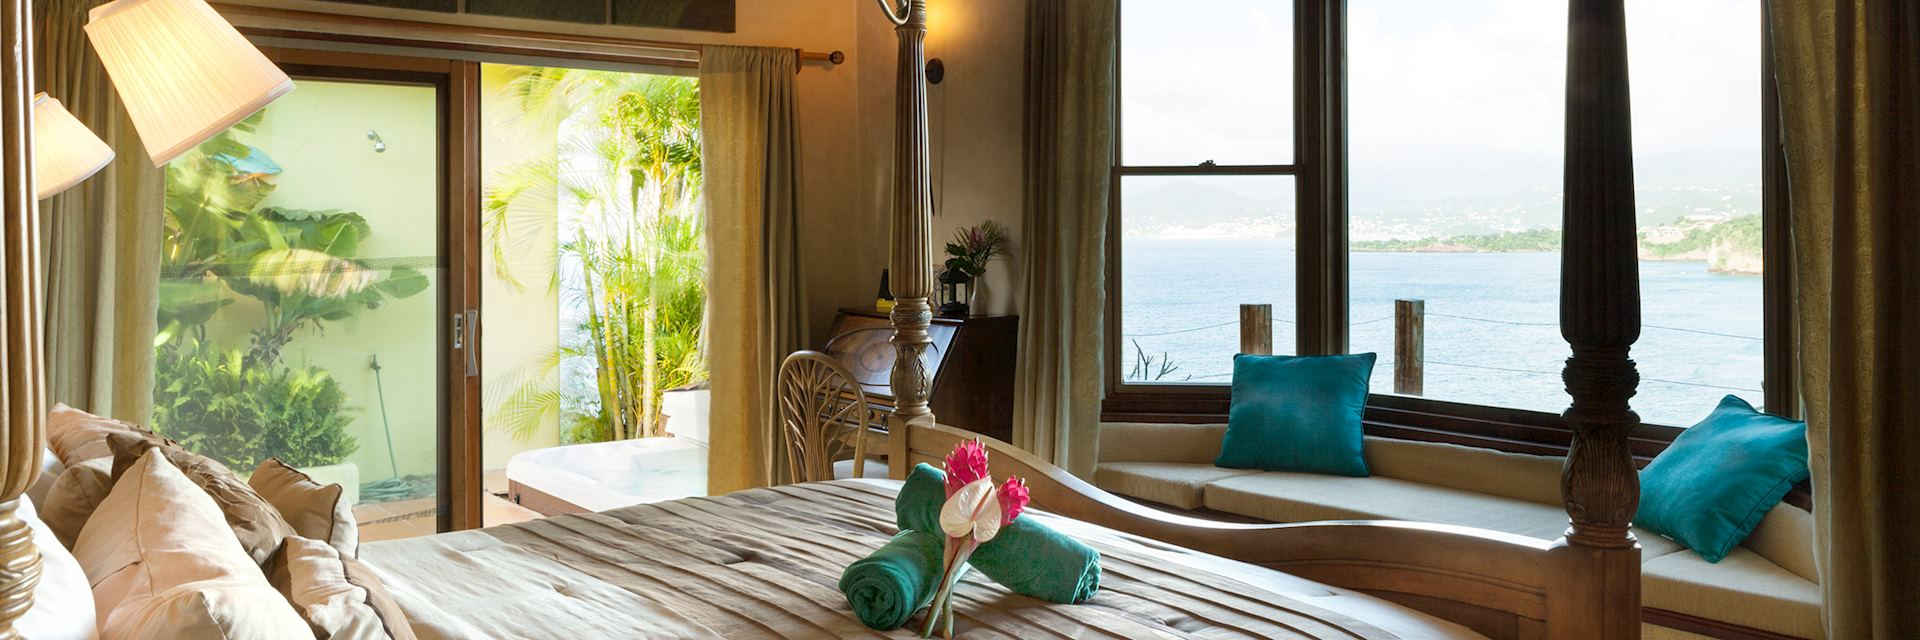 Maca Bana Luxury Boutique Resort, Grenada